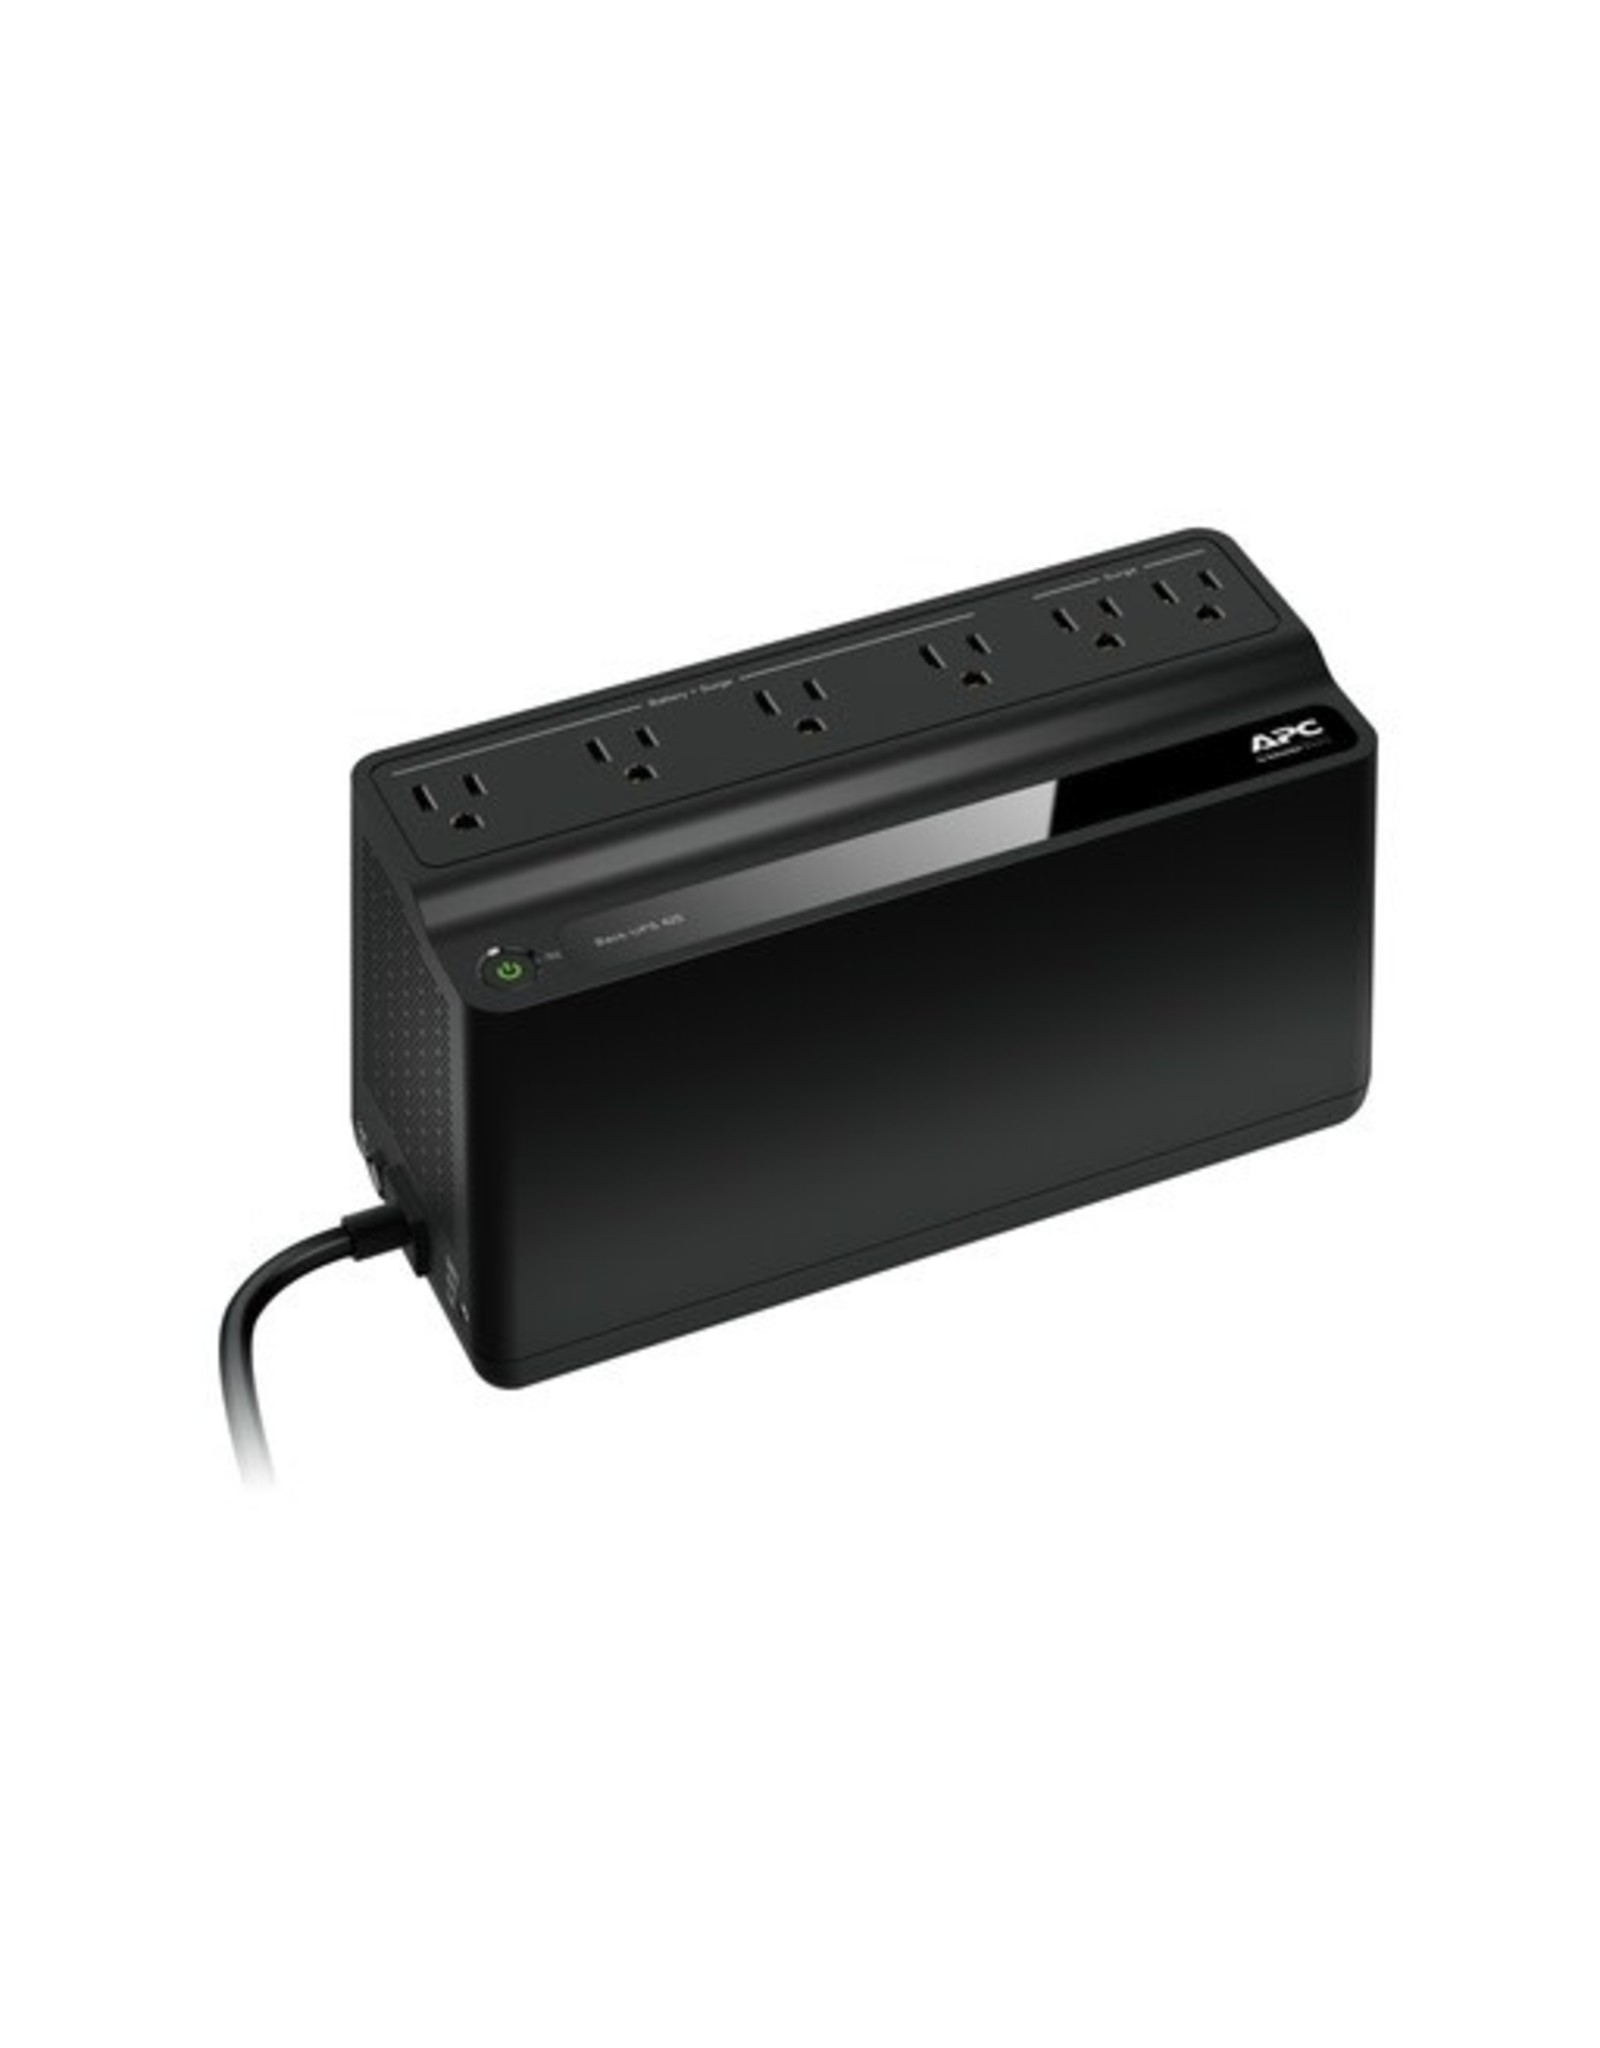 Schneider Electric Inst. APC by Schneider Electric Back-UPS, 6 Outlets, 425VA, 120V